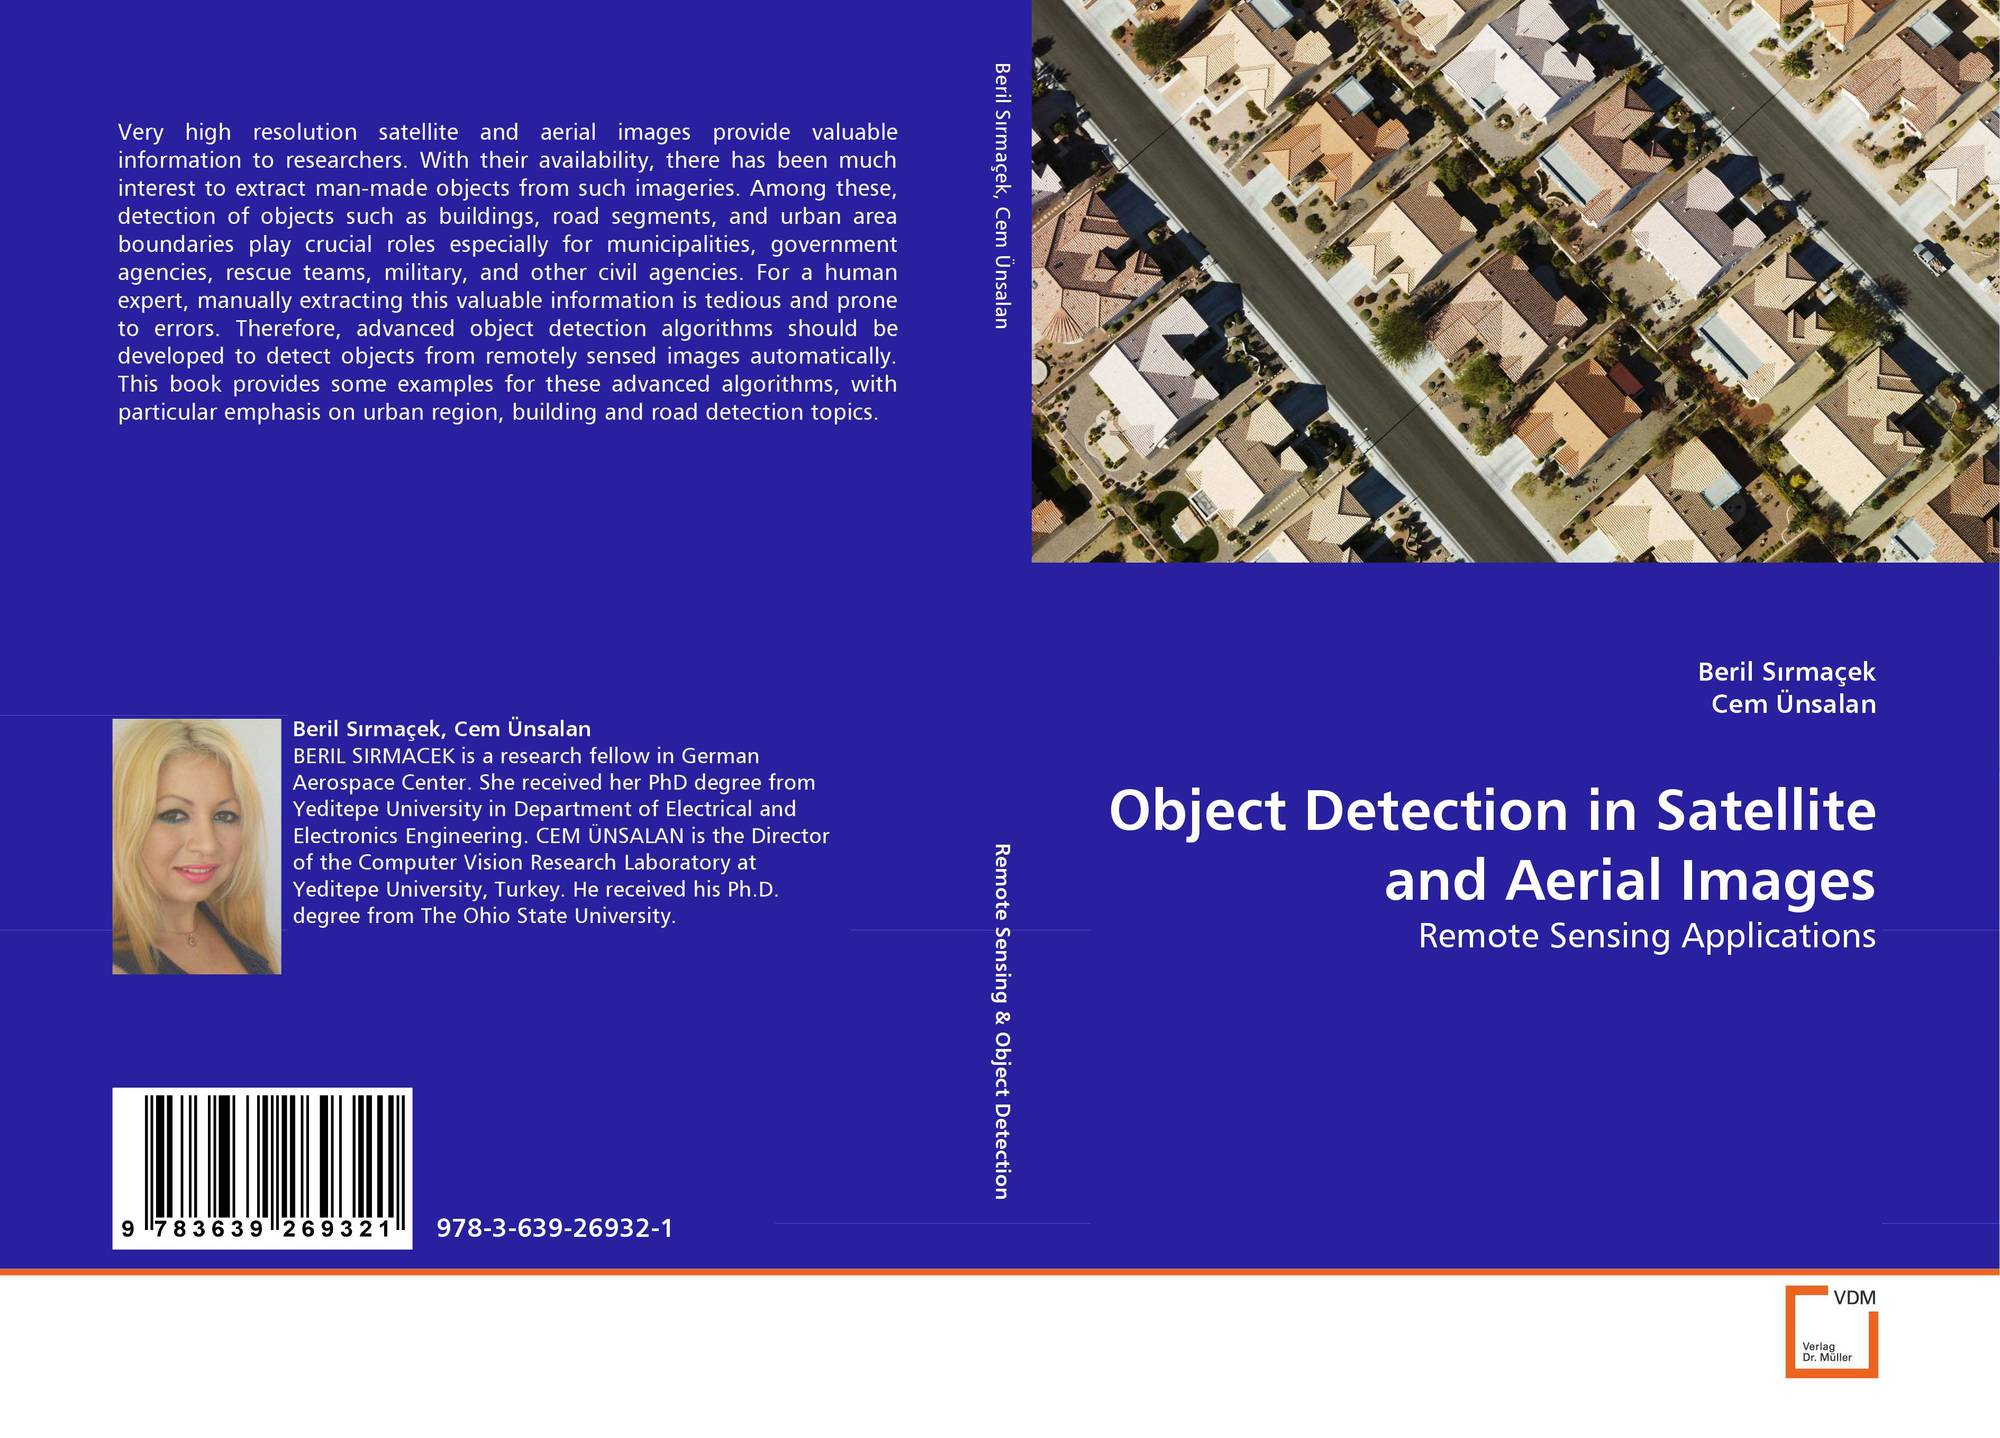 Object Detection in Satellite and Aerial Images, 978-3-639-26932-1